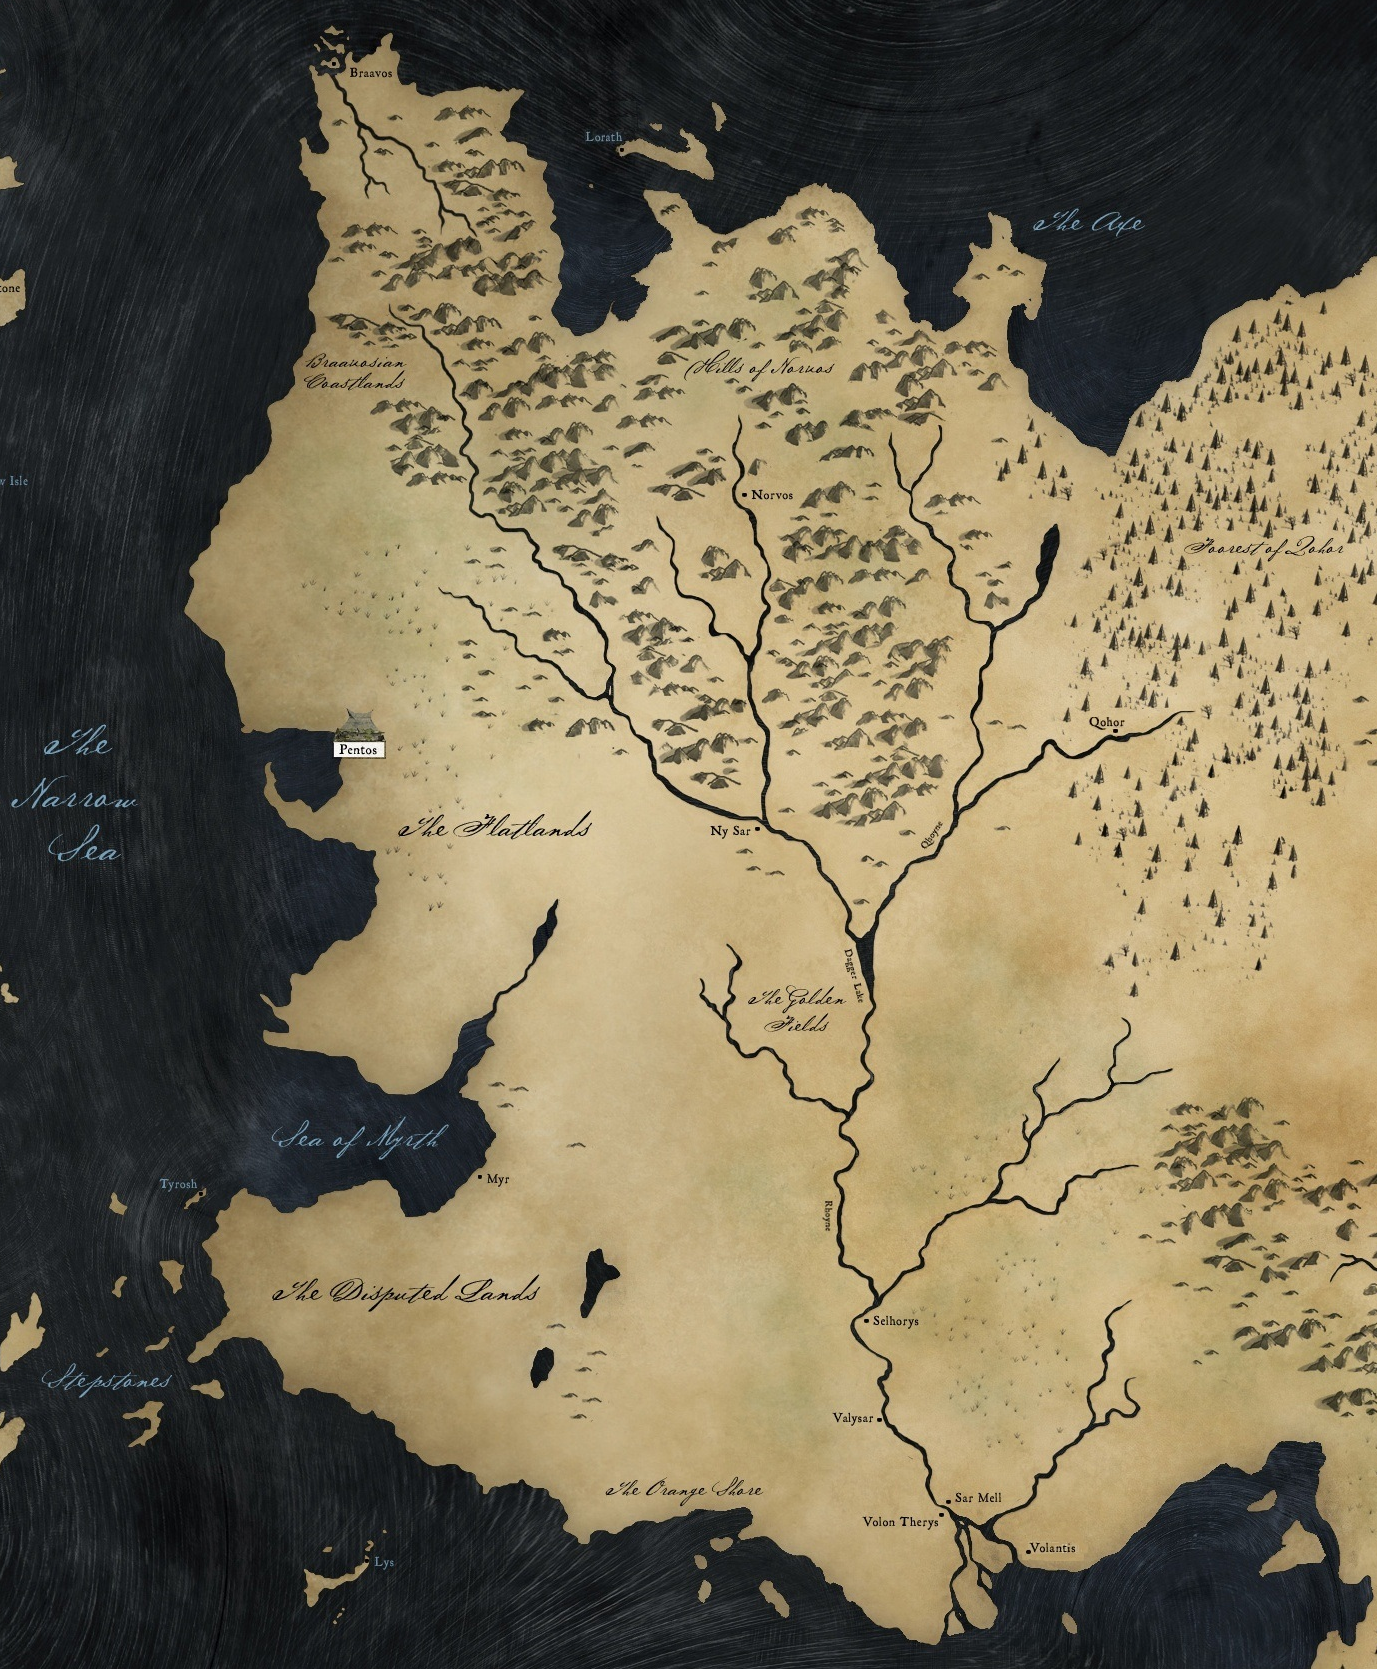 Free cities game of thrones wiki fandom powered by wikia the free cities gumiabroncs Image collections